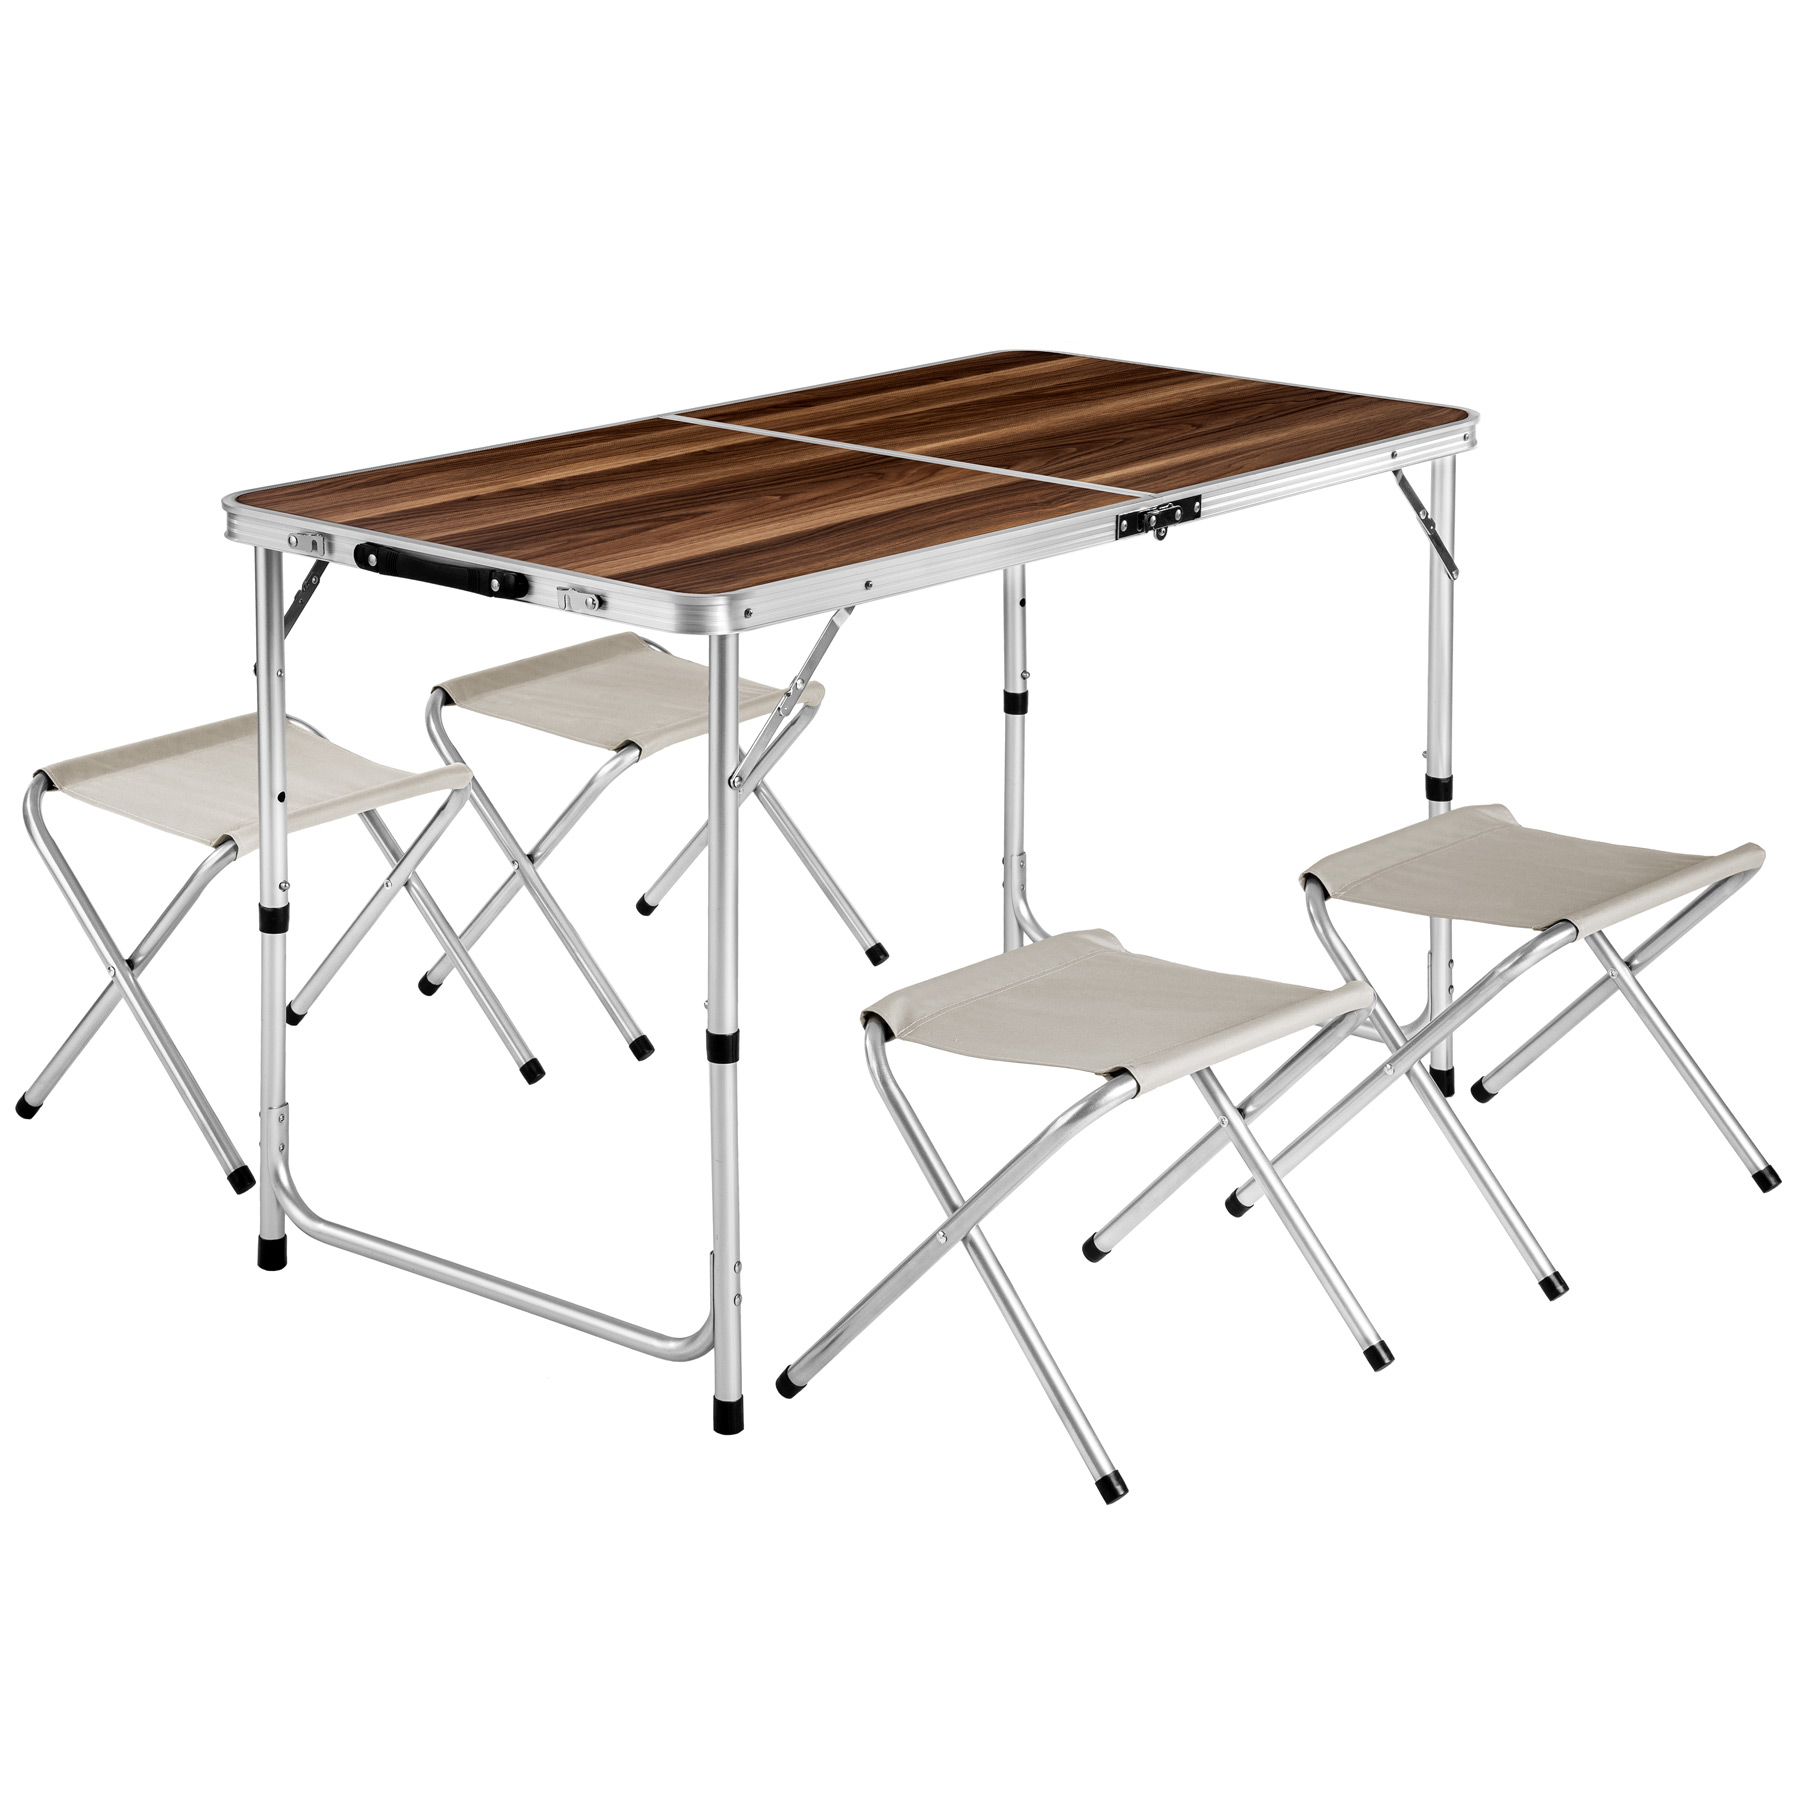 Eensemble table pliante valise avec 4 tabourets camping - Table pliante 4 chaises integrees ...